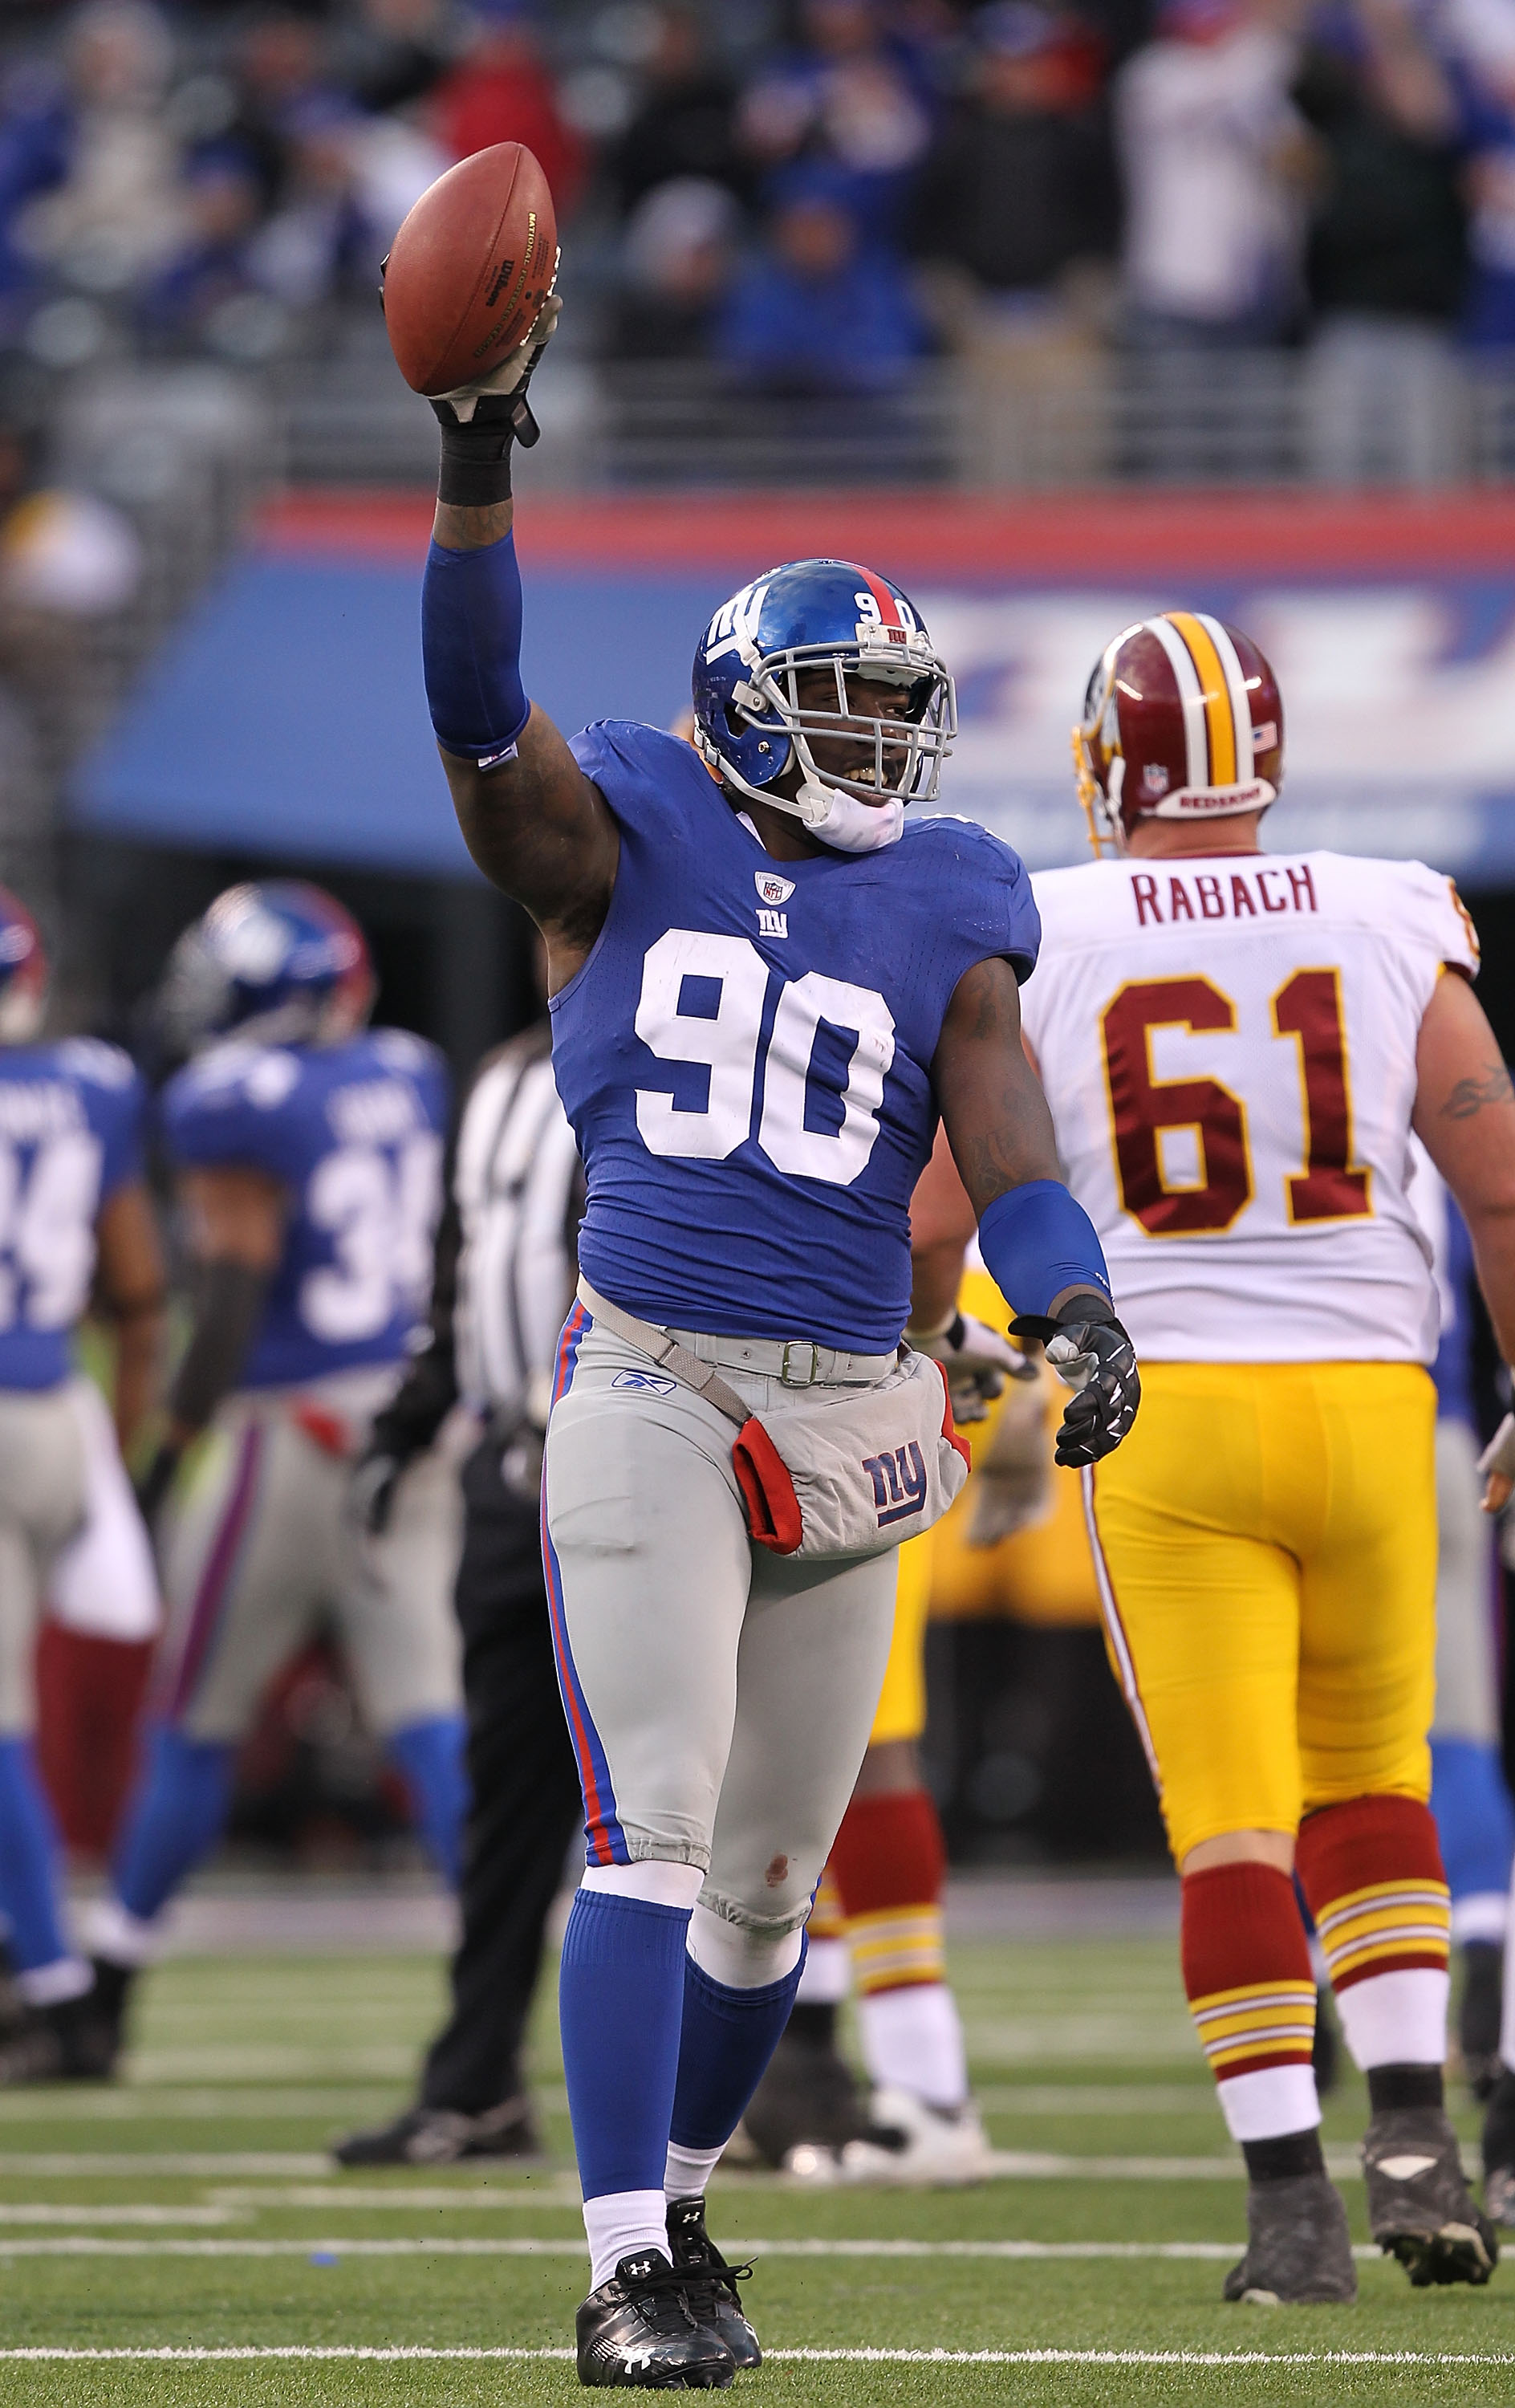 EAST RUTHERFORD, NJ - DECEMBER 05:  Jason Pierre-Paul #90 of the New York Giants celebrates running back a fumble by the Washington Redskins during their game on December 5, 2010 at The New Meadowlands Stadium in East Rutherford, New Jersey.  (Photo by Al